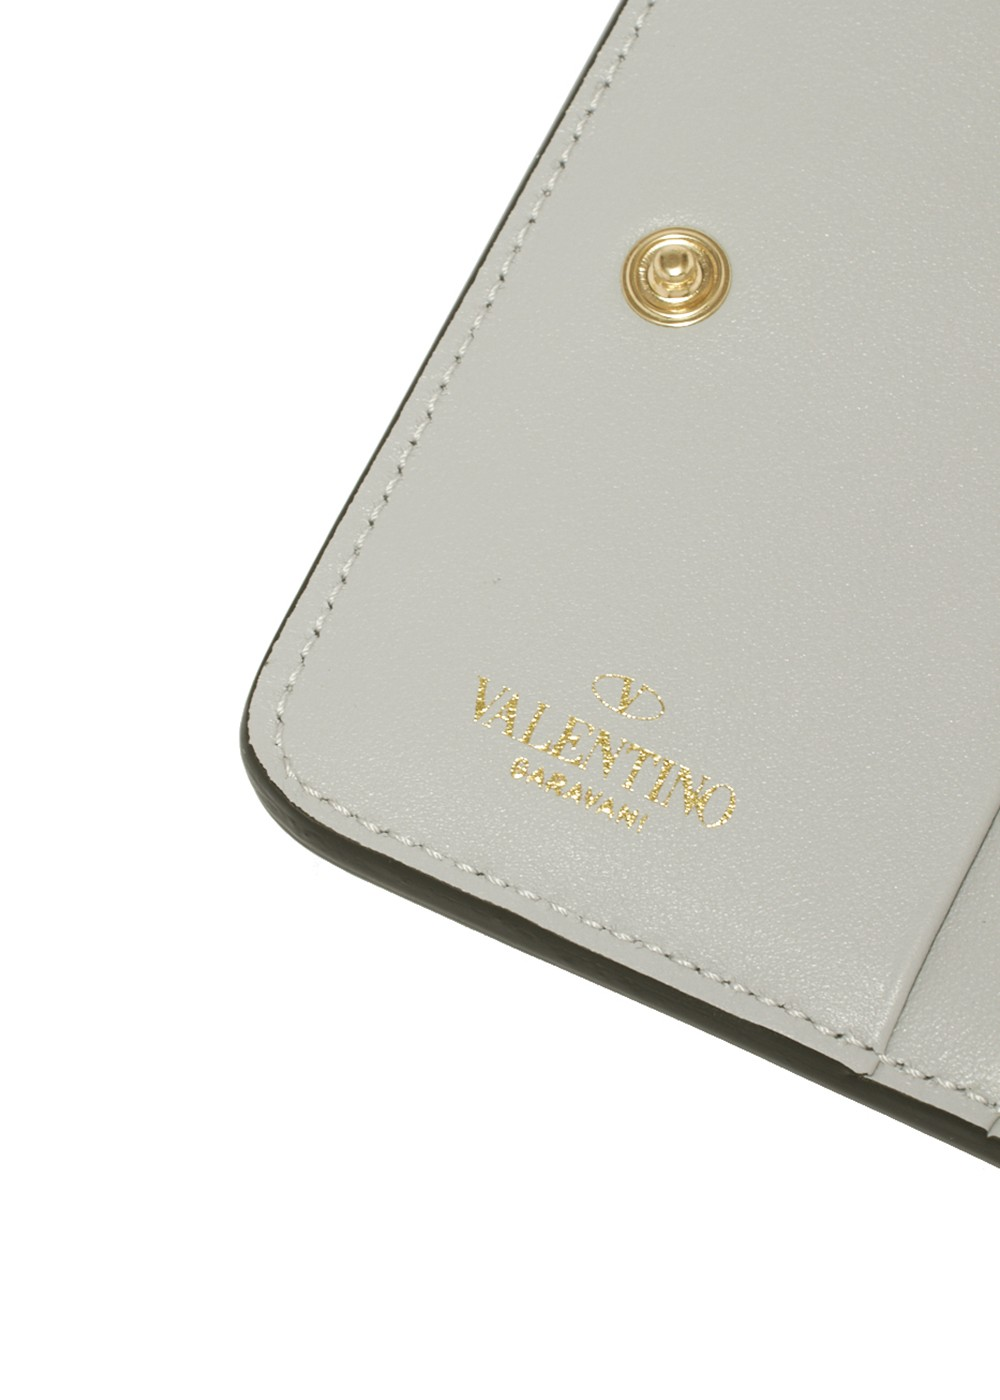 【最大32%OFF】ROCKSTUD COMPACT ZIPPED WALLET|PASTEL GREY|レディース財布|VALENTINO_(TI)